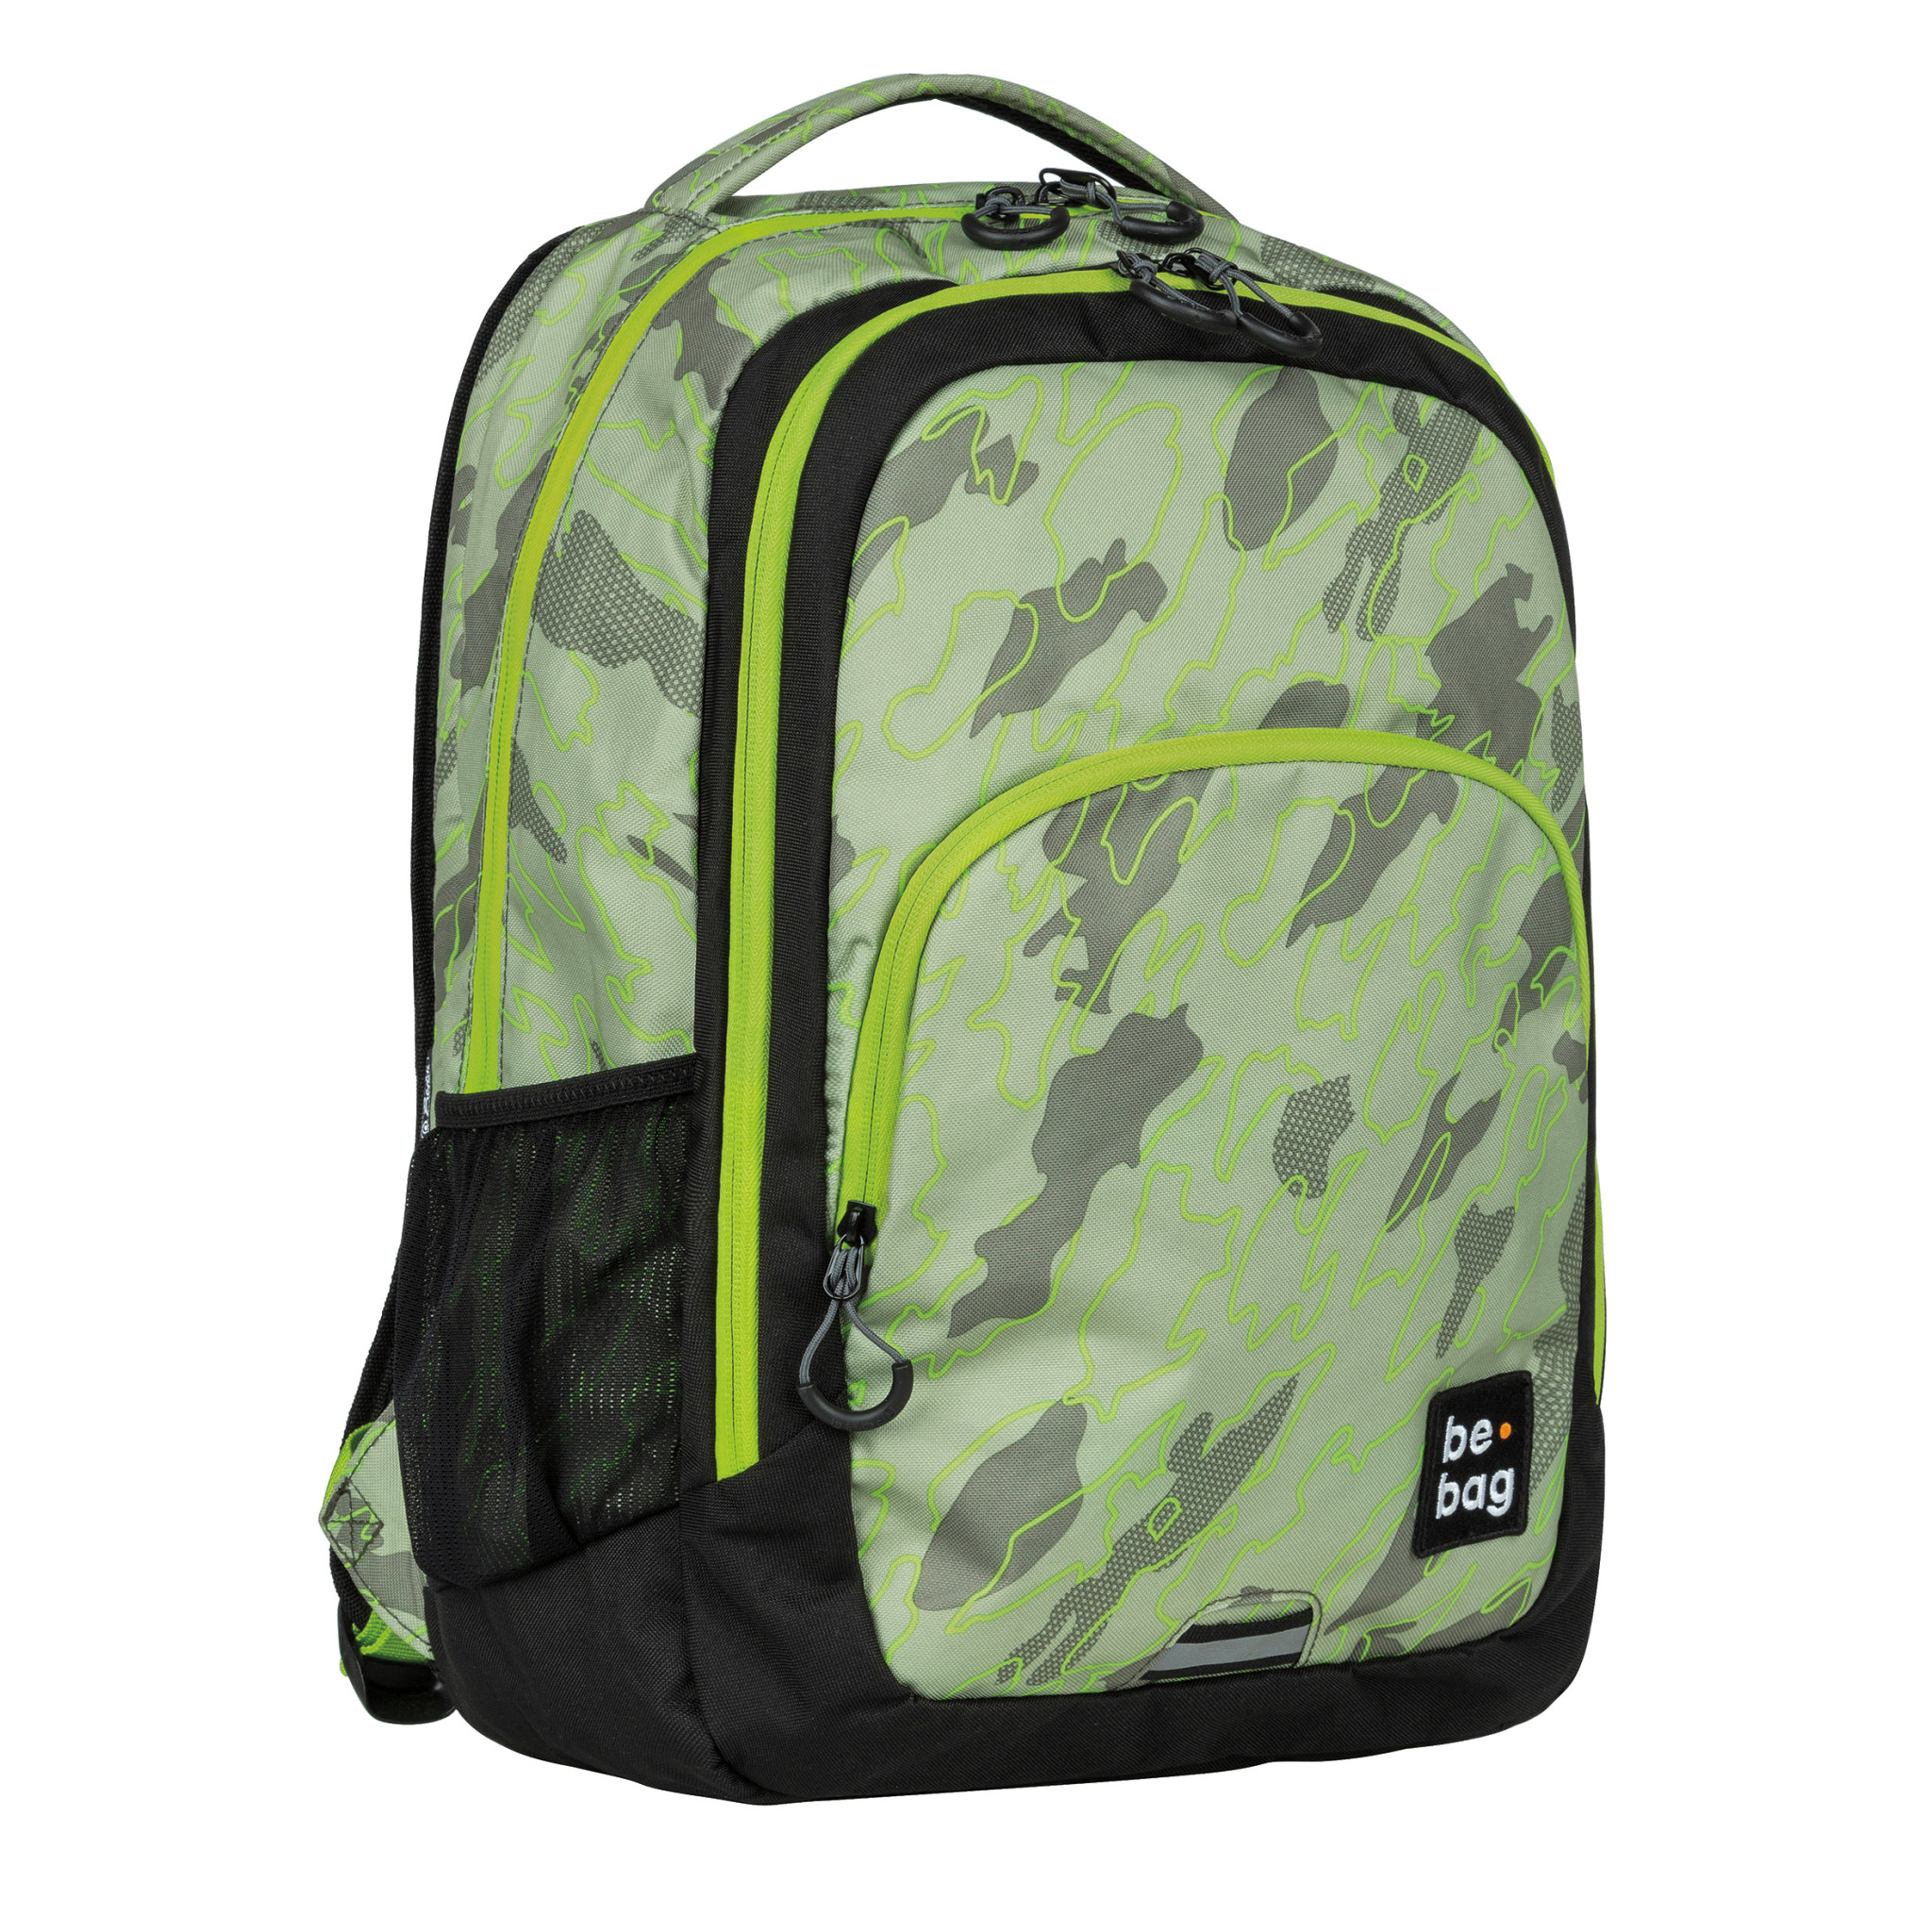 Be.bag Herlitz be.bag be.ready - Junge/Mädchen - School backpack - Weiterführende Schule - Camouflage - Polyester - Muster